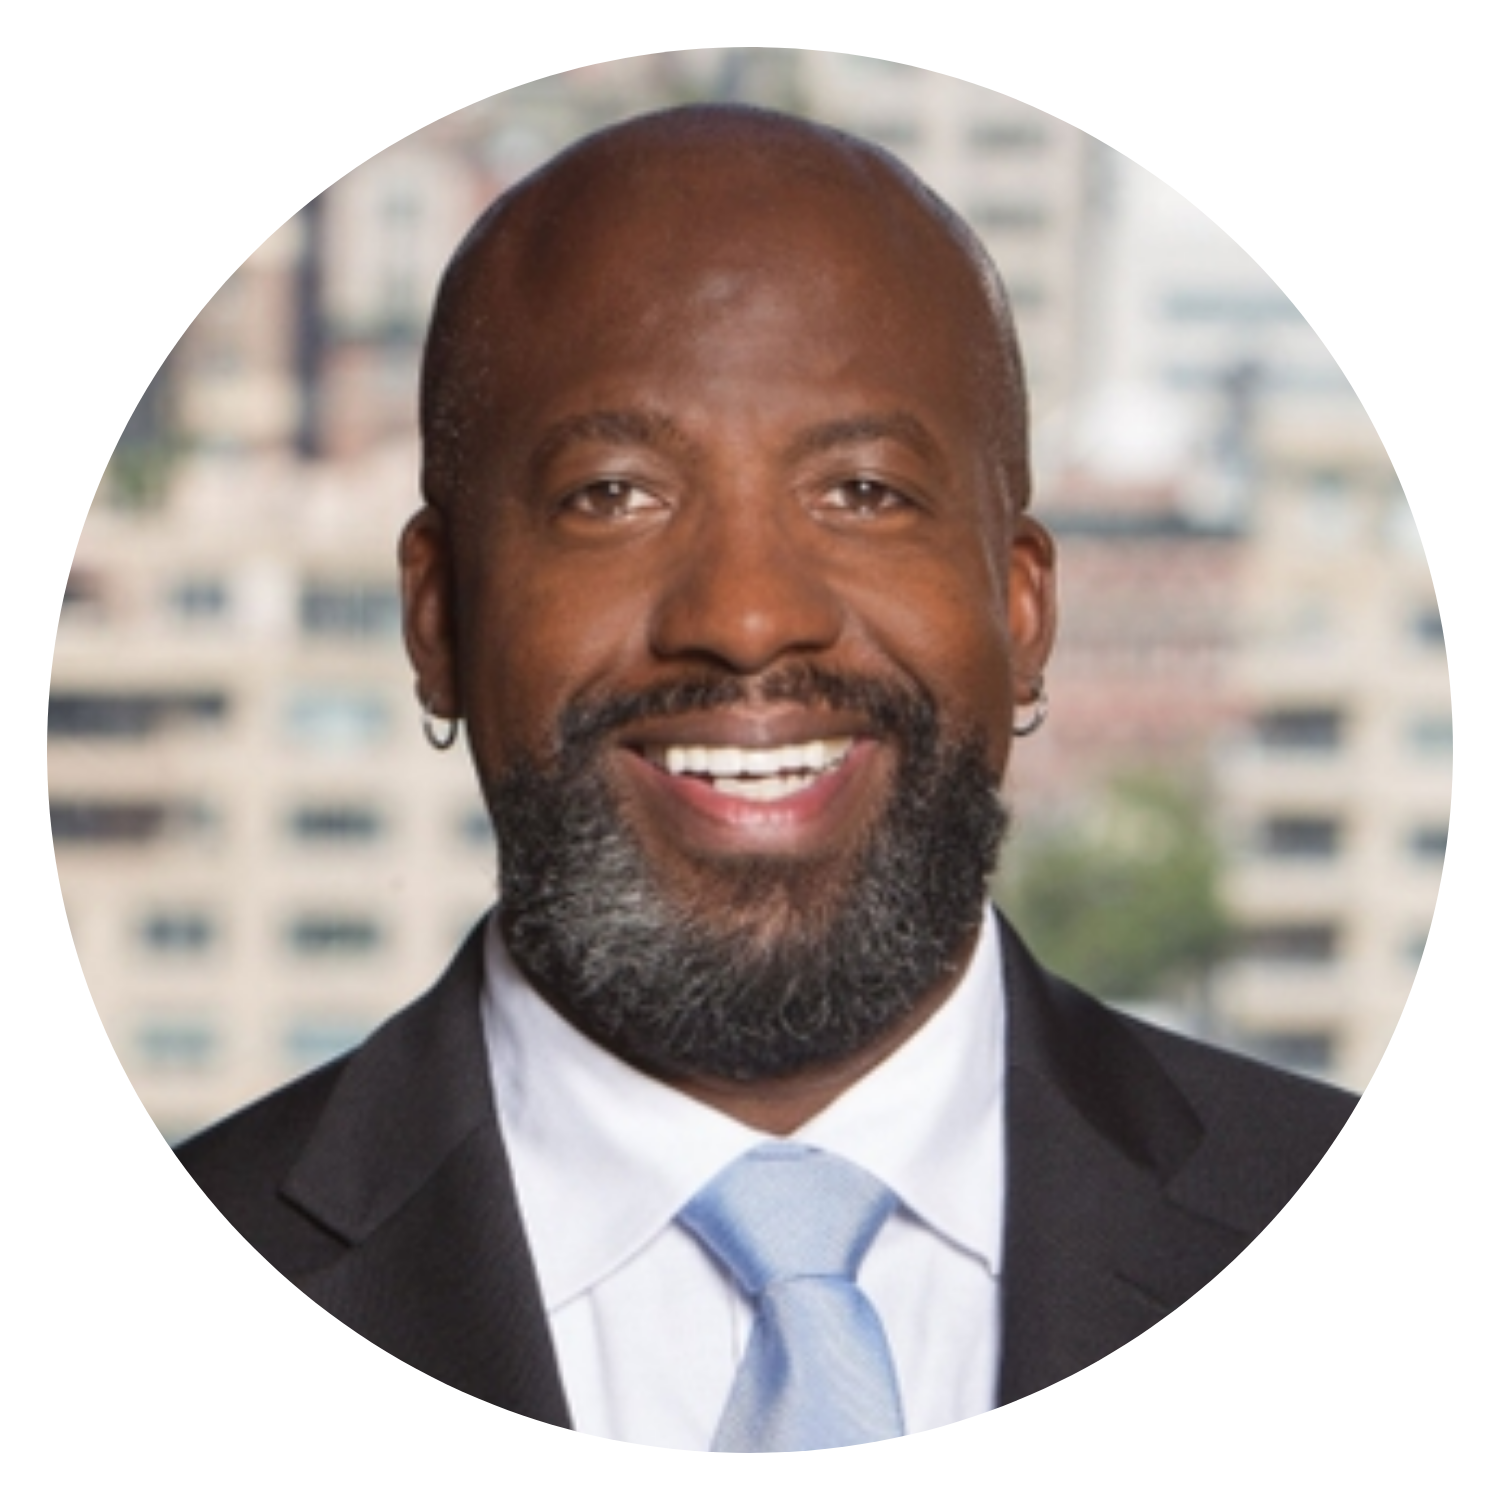 Dr. Charlton McIlwain,Vice Provost for Faculty Engagement and Development & Professor of Media, Culture, and Communication at NYU